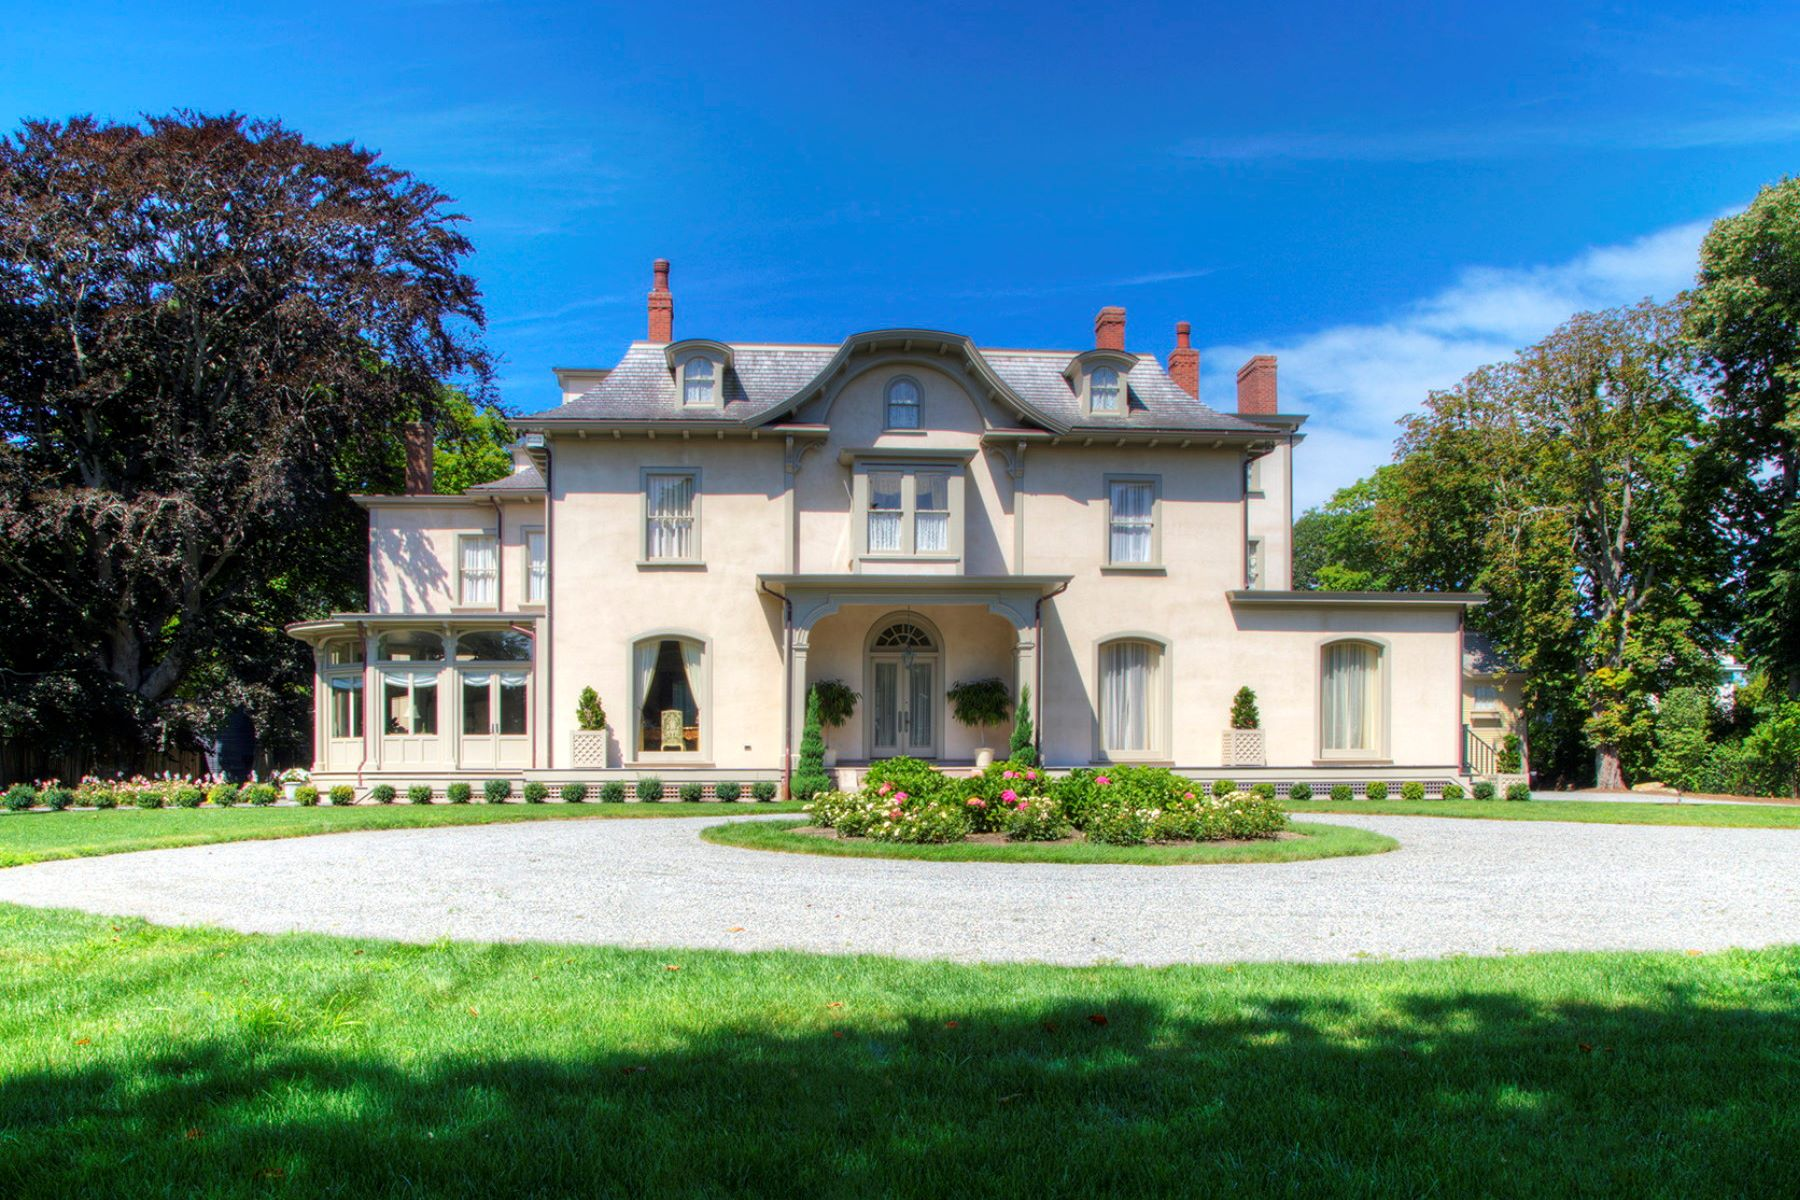 Single Family Homes for Sale at Historic Quatrel on Bellevue 673 Bellevue Avenue Newport, Rhode Island 02840 United States